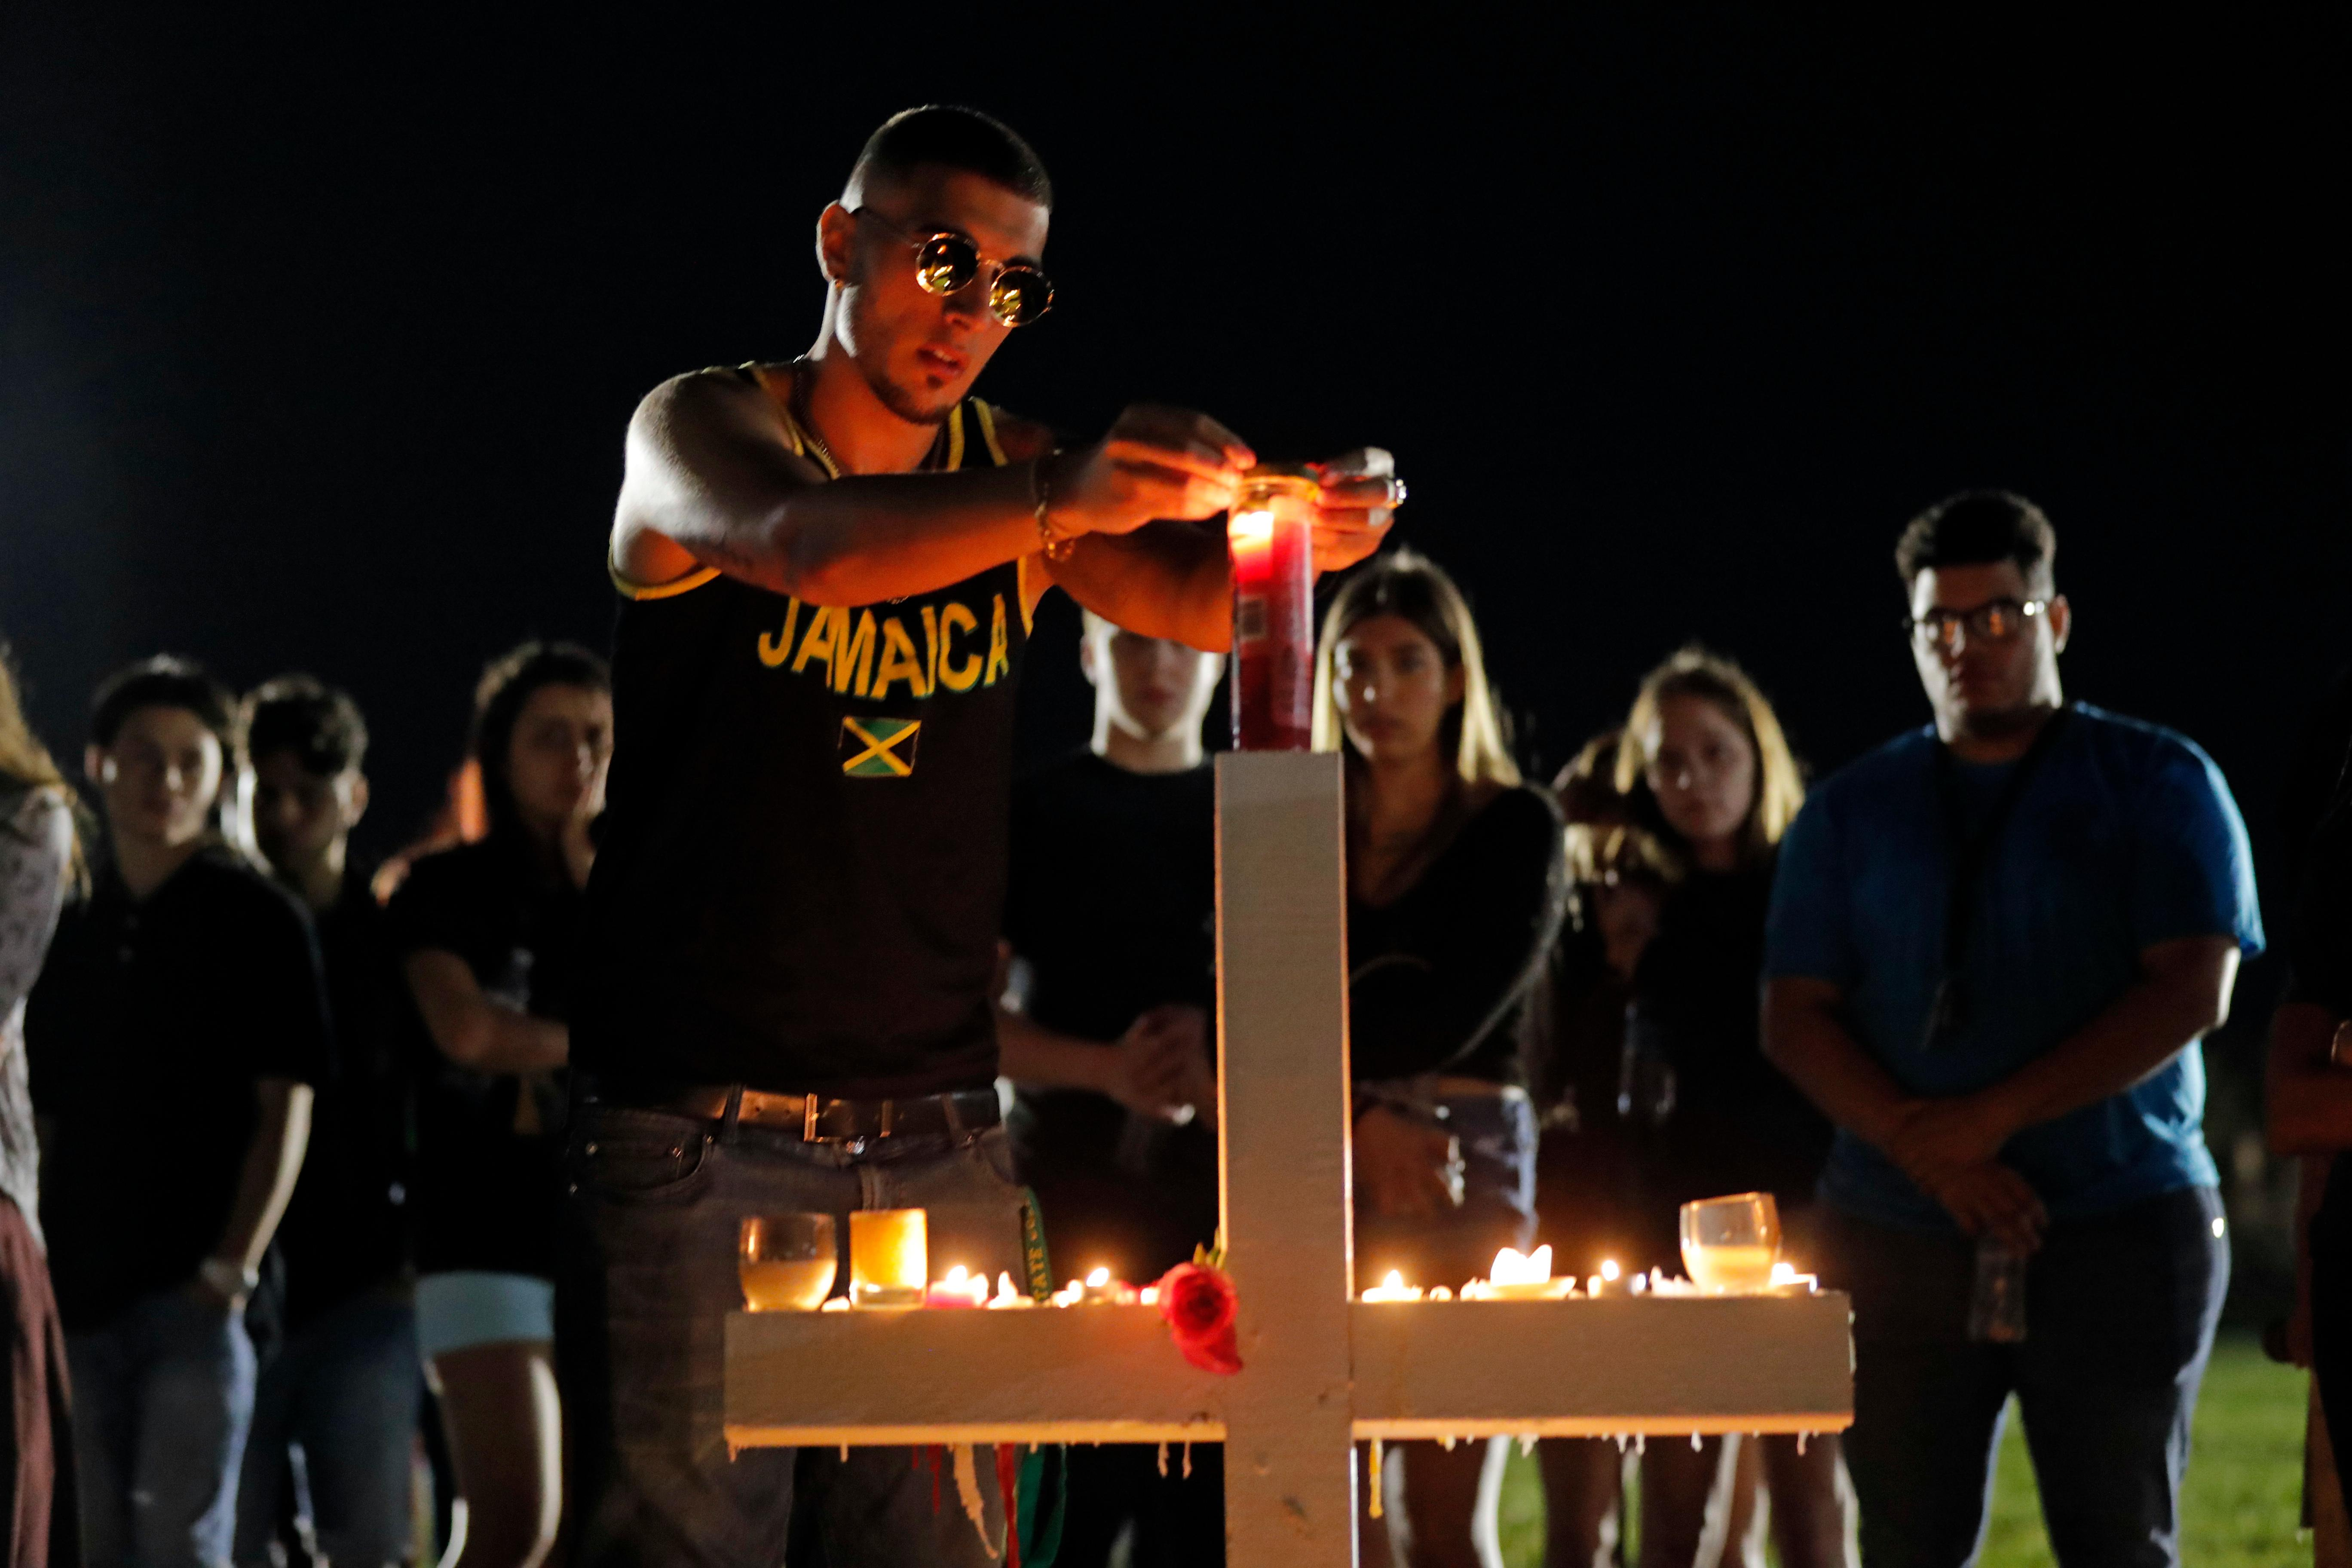 Joey Kandil, 18, a recent graduate of Marjory Stoneman Douglas High School, places a ring around a candle on one of seventeen crosses, after a candlelight vigil for the victims of the Wednesday shooting at the school, in Parkland, Fla., Thursday, Feb. 15, 2018. Nikolas Cruz, a former student, was charged with 17 counts of premeditated murder on Thursday. (AP Photo/Gerald Herbert)